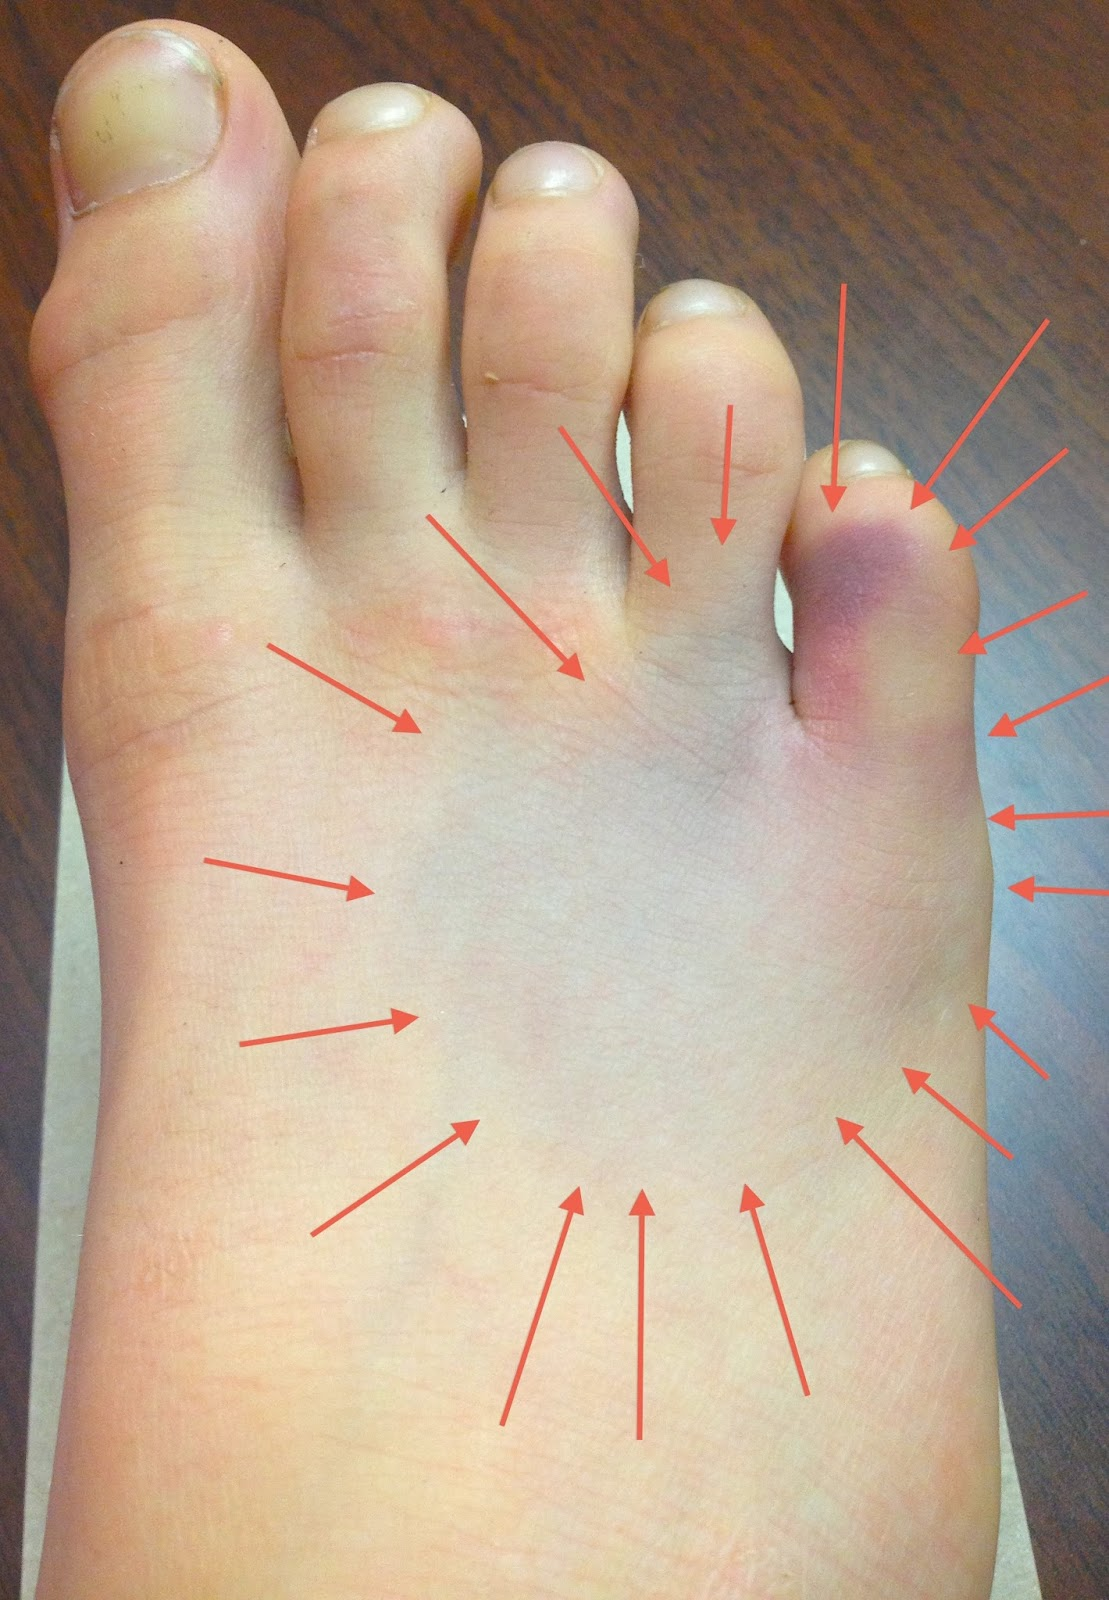 My Running Doc: How Can I Tell if My Foot is Broken?